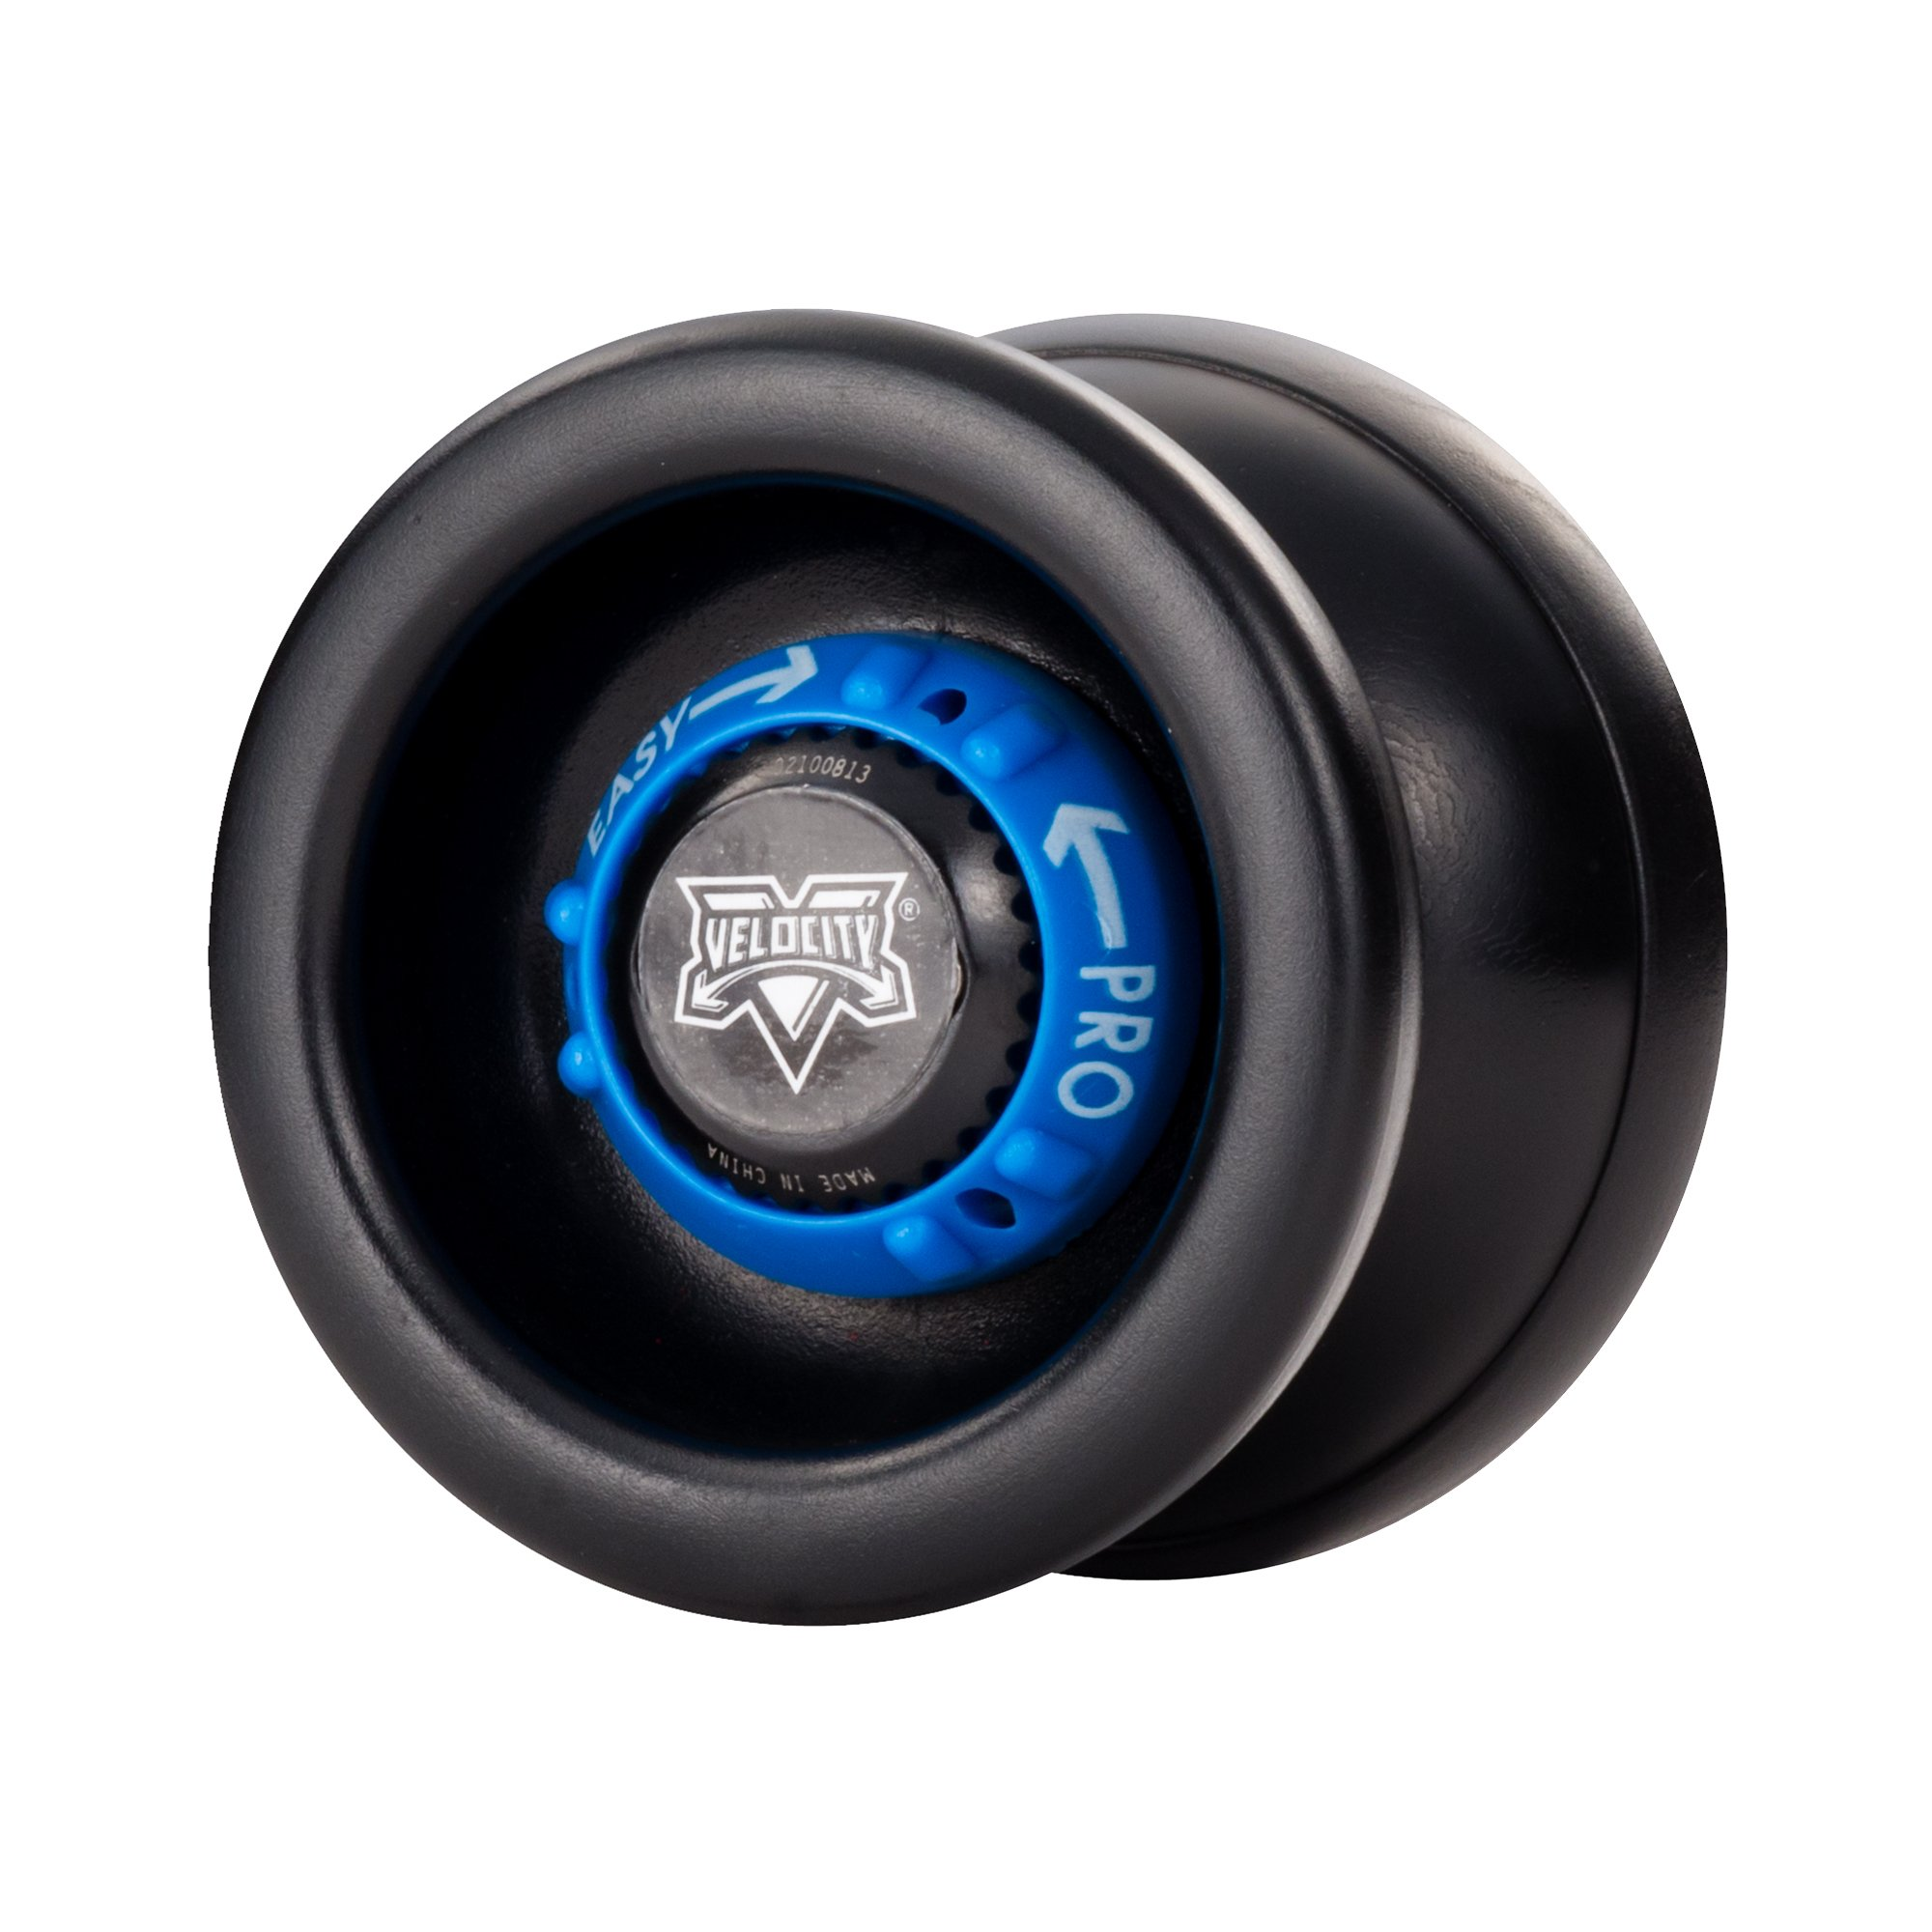 YoYoFactory Velocity Adjustable YoYo - Black with Blue Dial